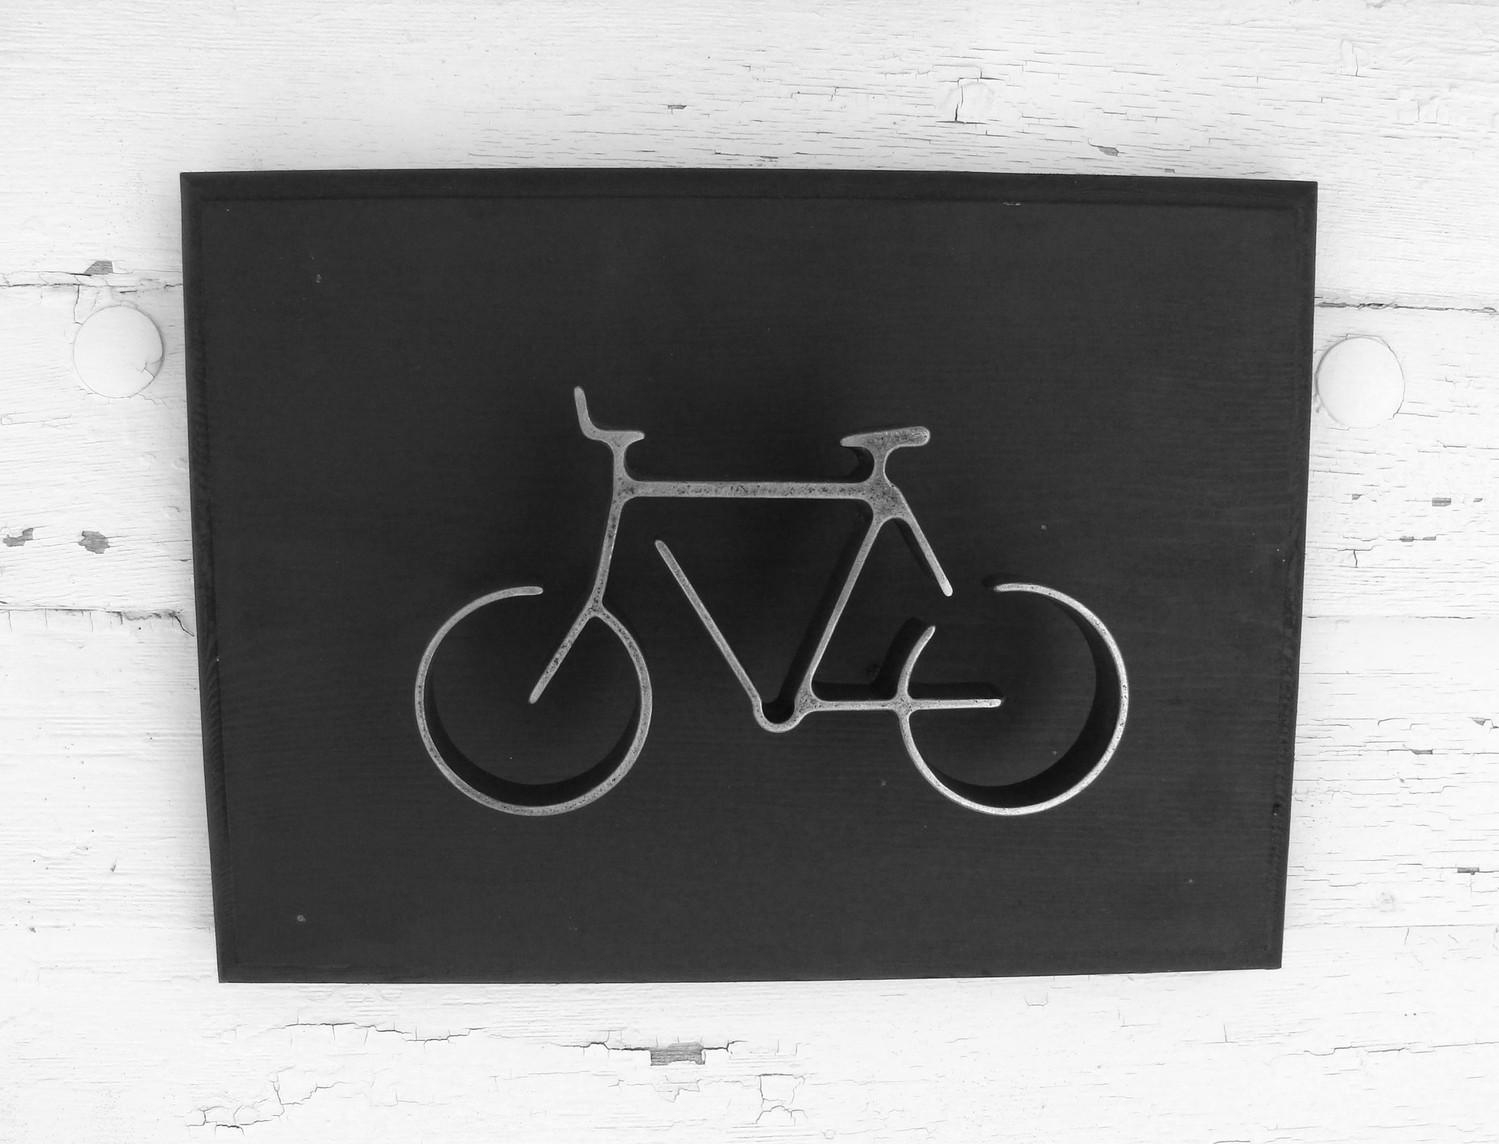 Metal Bike Wall Art Sign Bicycle Wall Hanging Home Or Office Intended For Bike Wall Art (Image 11 of 20)